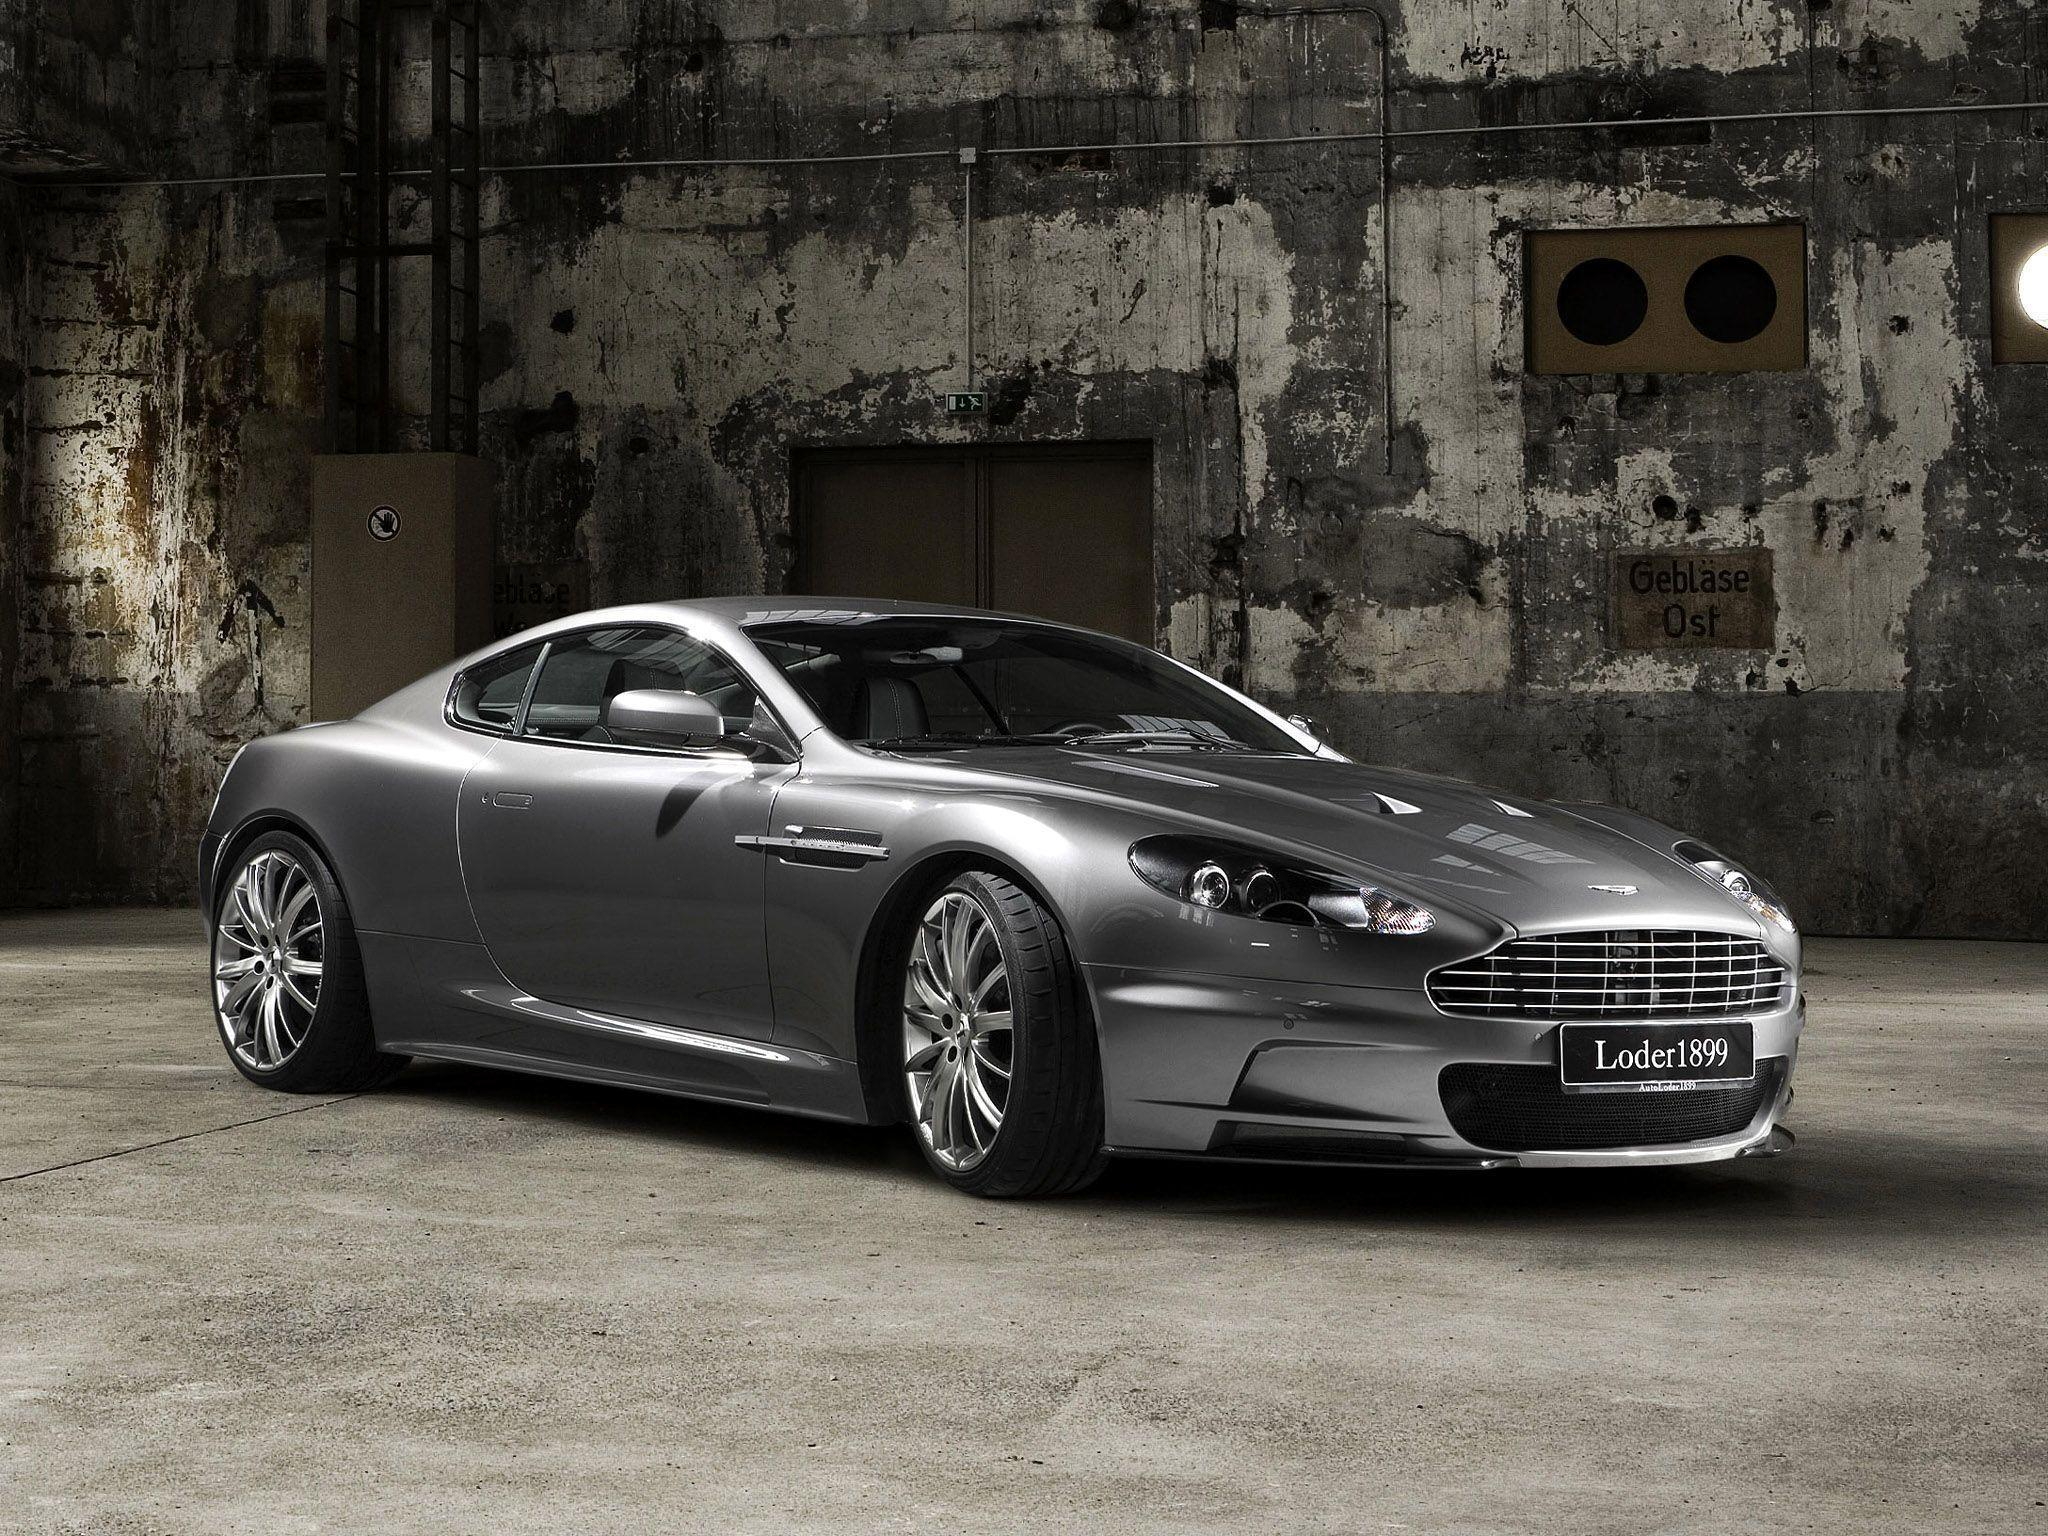 aston martin dbs wallpapers wallpaper cave. Black Bedroom Furniture Sets. Home Design Ideas